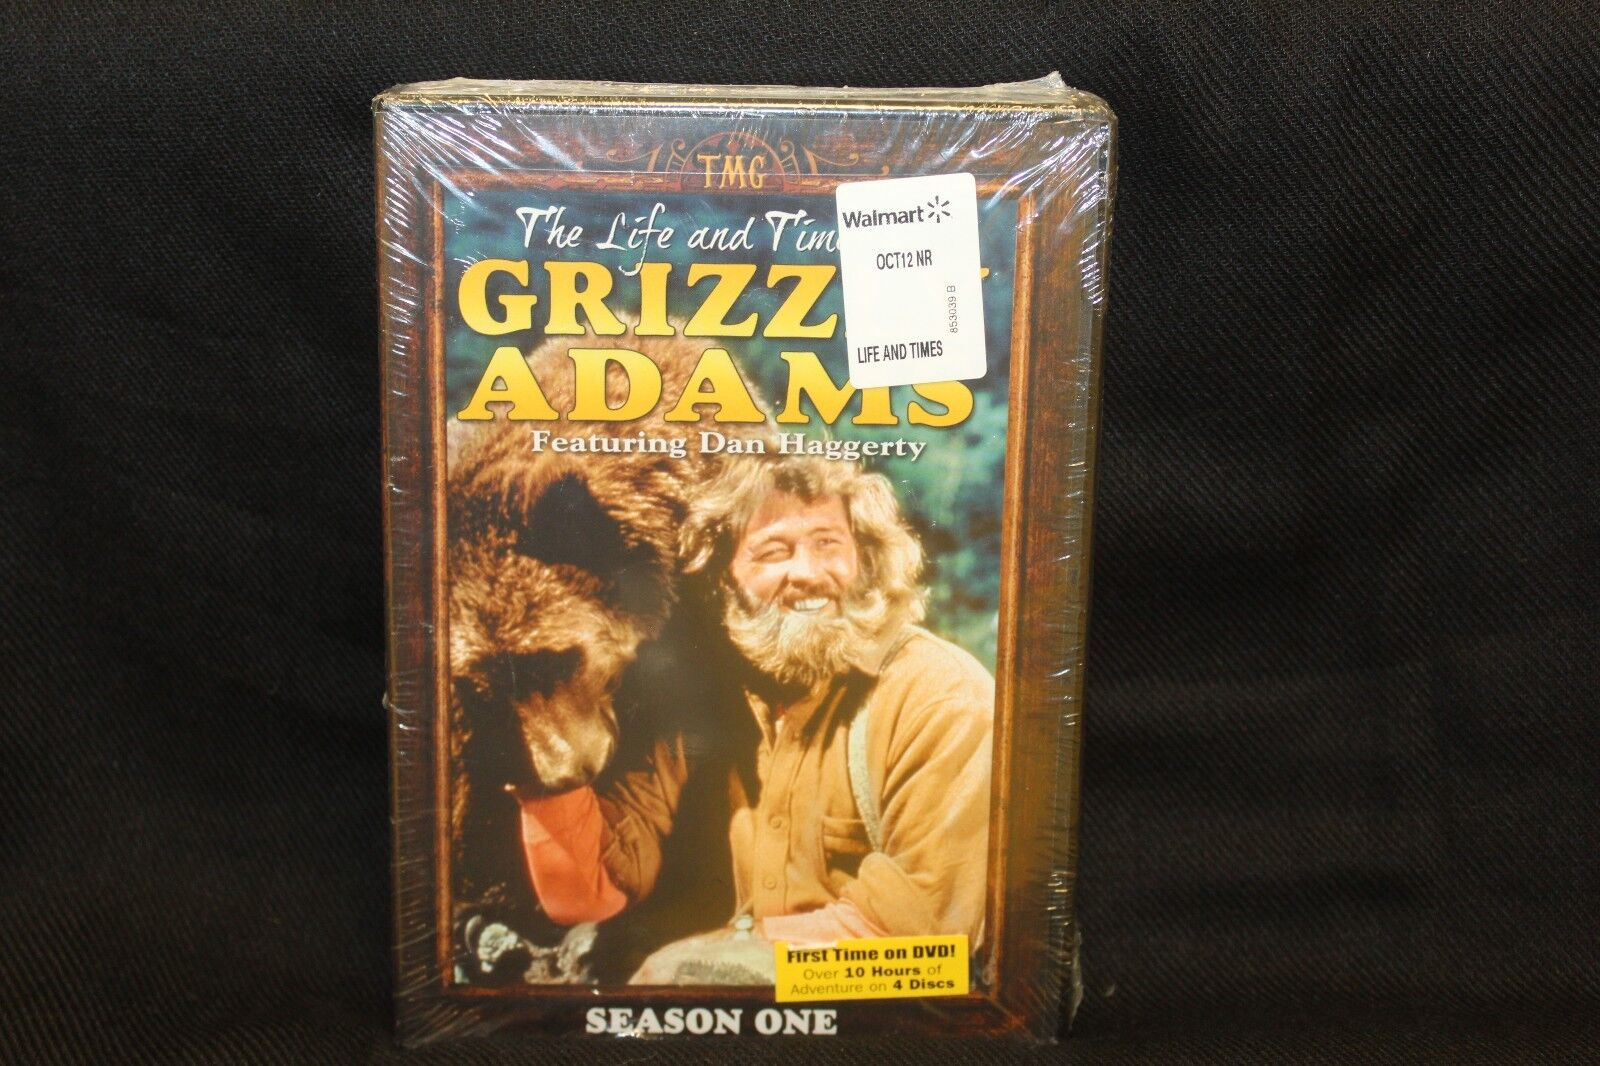 THE LIFE AND TIMES OF GRIZZLY ADAMS SEASON 1 ~ 4 DVD Set ~ SEALED